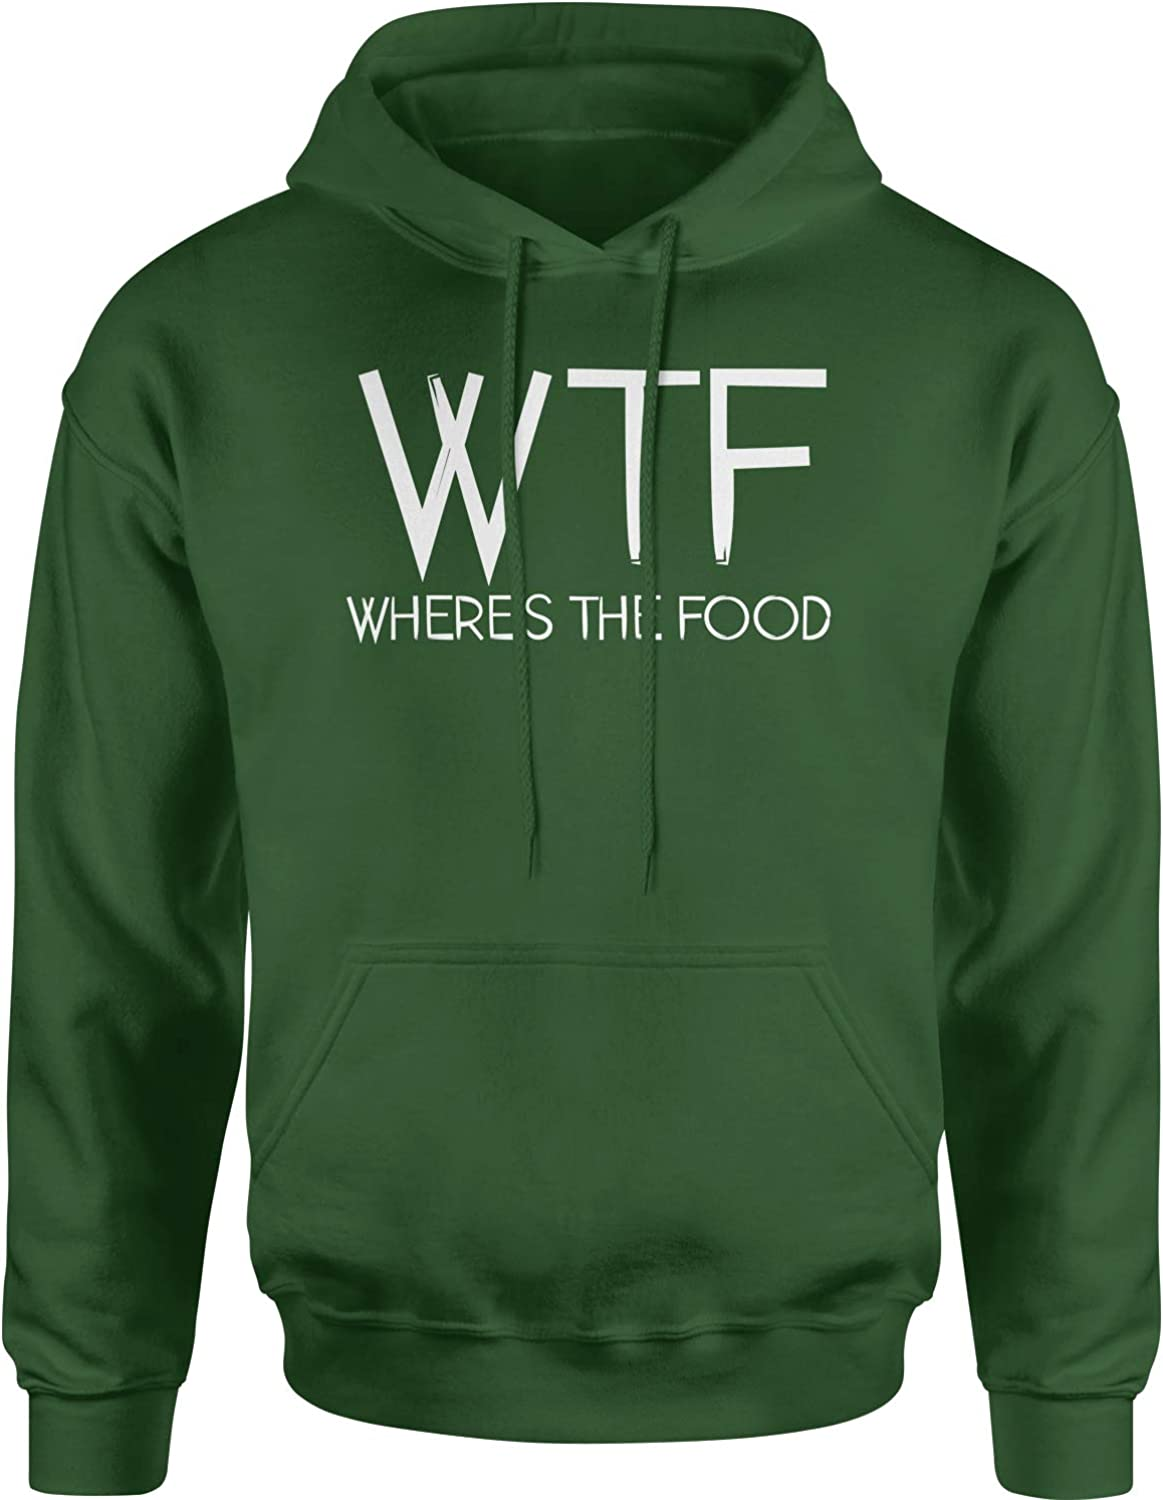 The Best Wtf Wheres The Food Sweatshirt